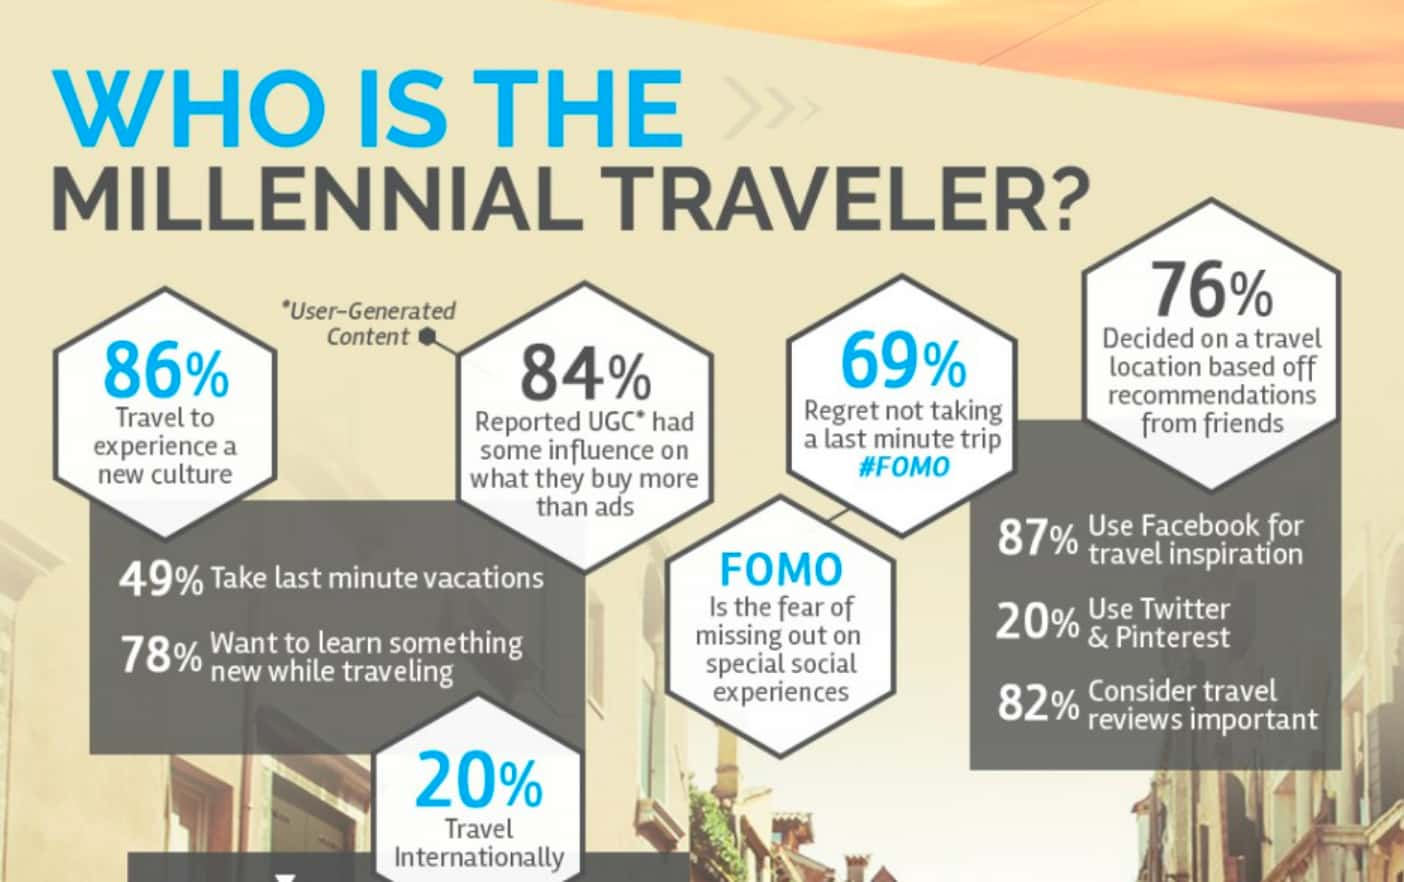 Who is the millennial traveler?